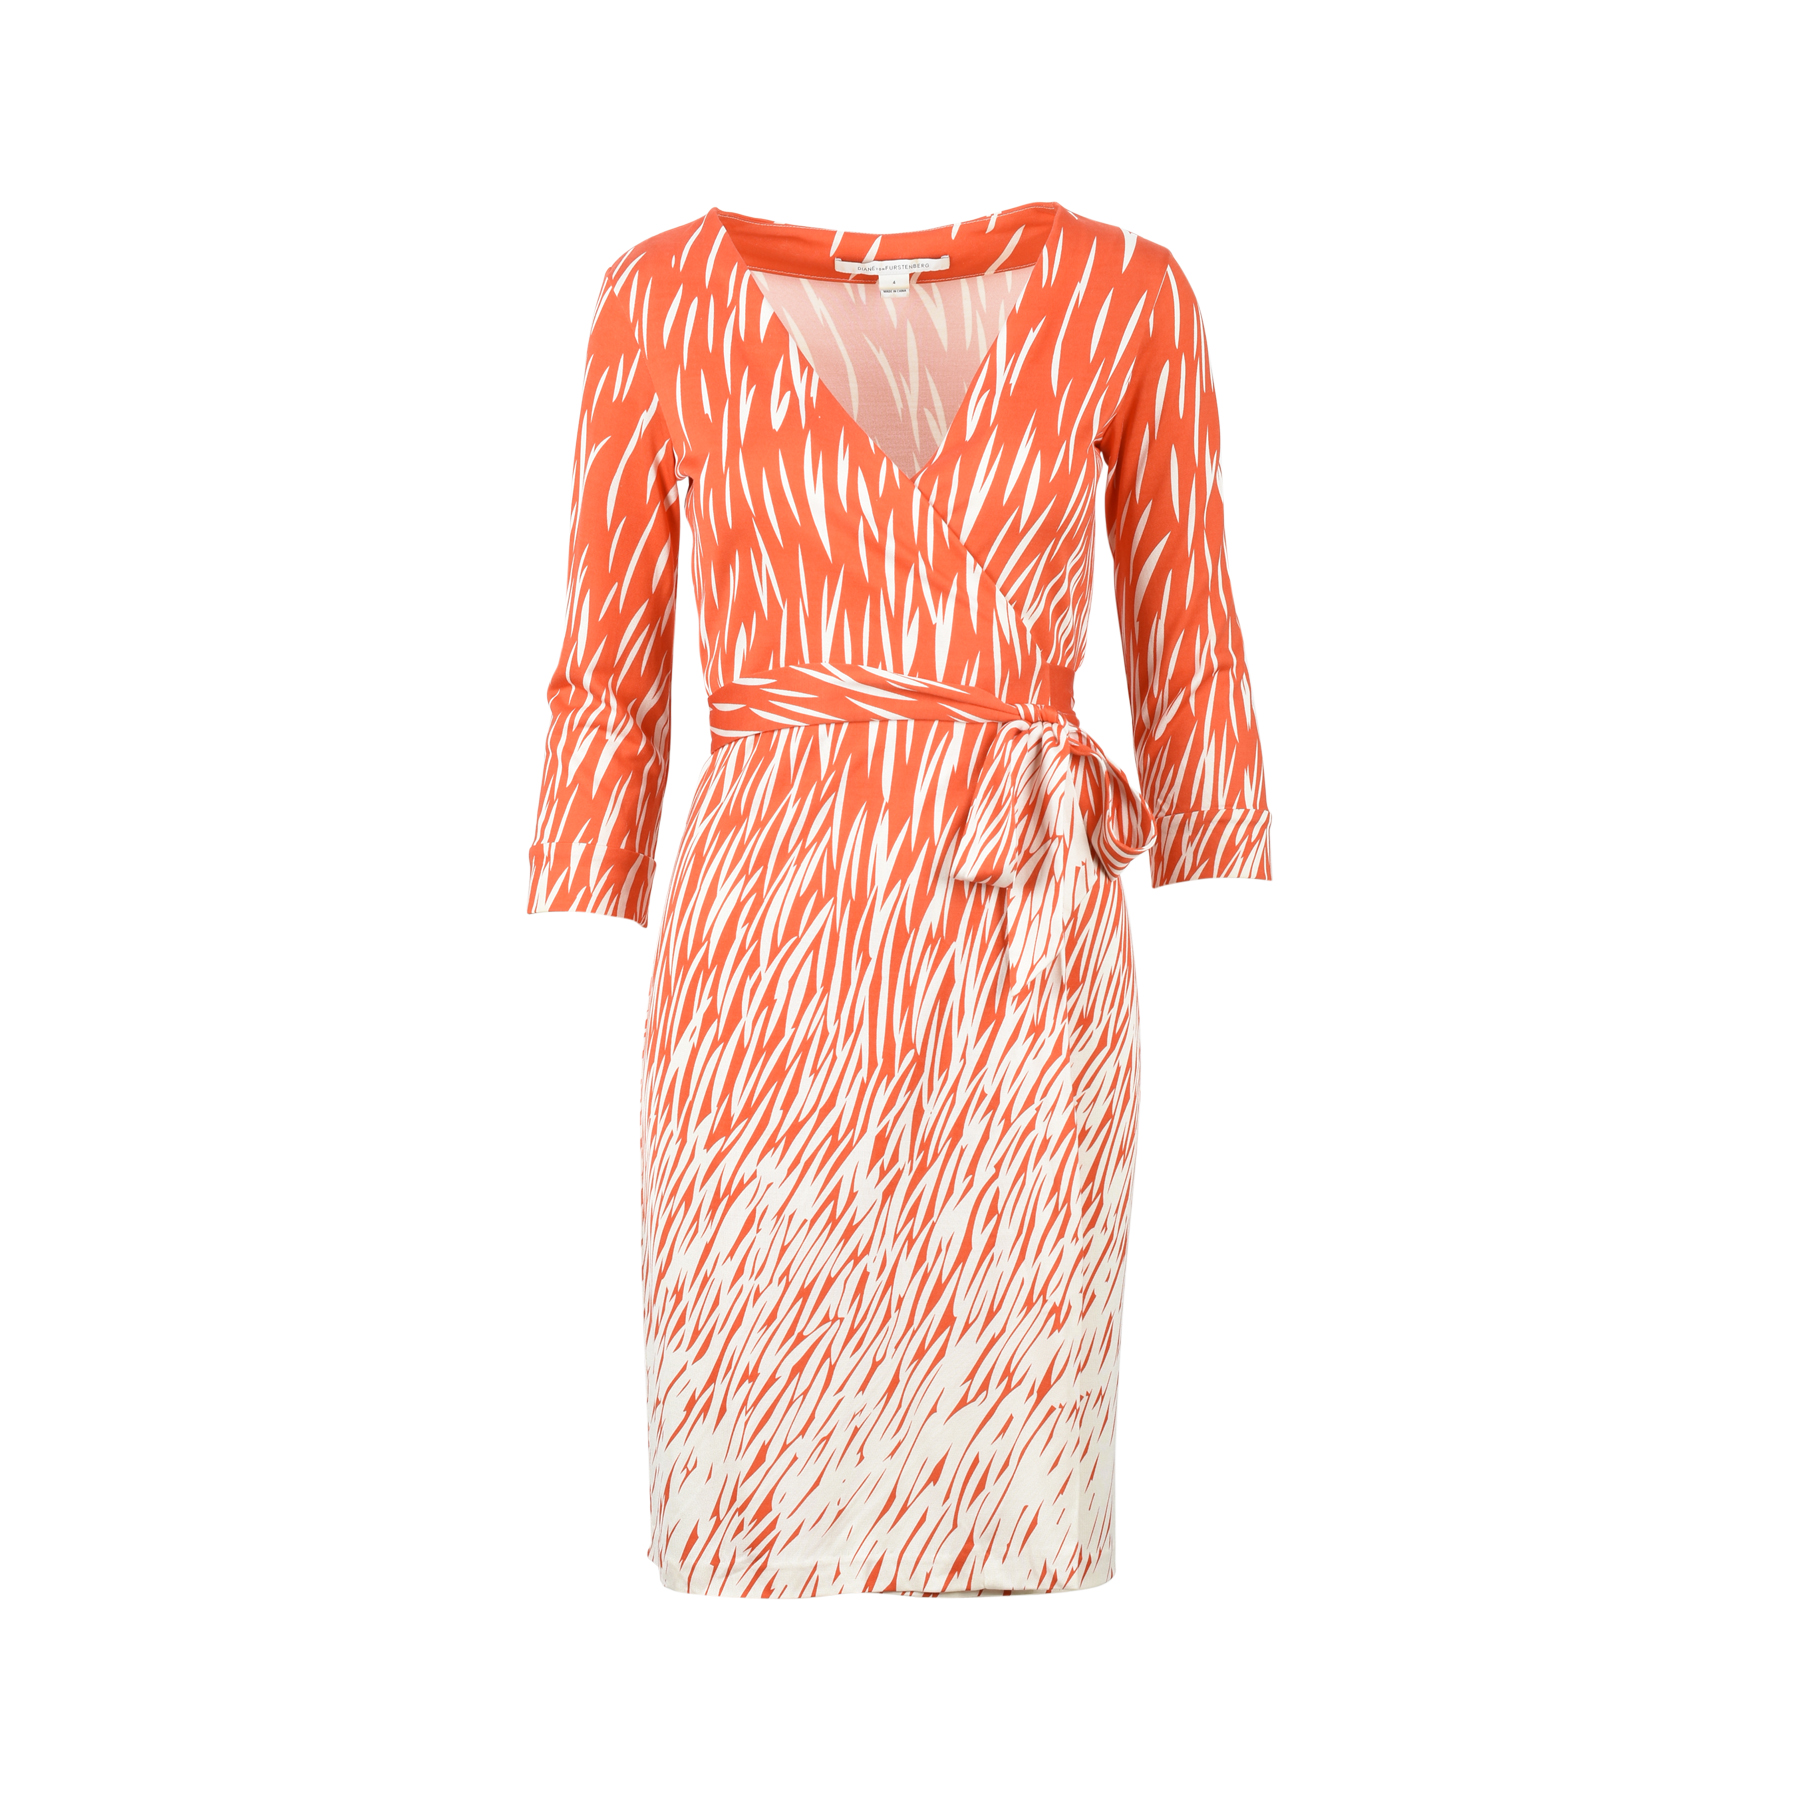 3f42bd827cebd Authentic Second Hand Diane Von Furstenberg New JulianTwo Wrap Dress  (PSS-494-00004) - THE FIFTH COLLECTION